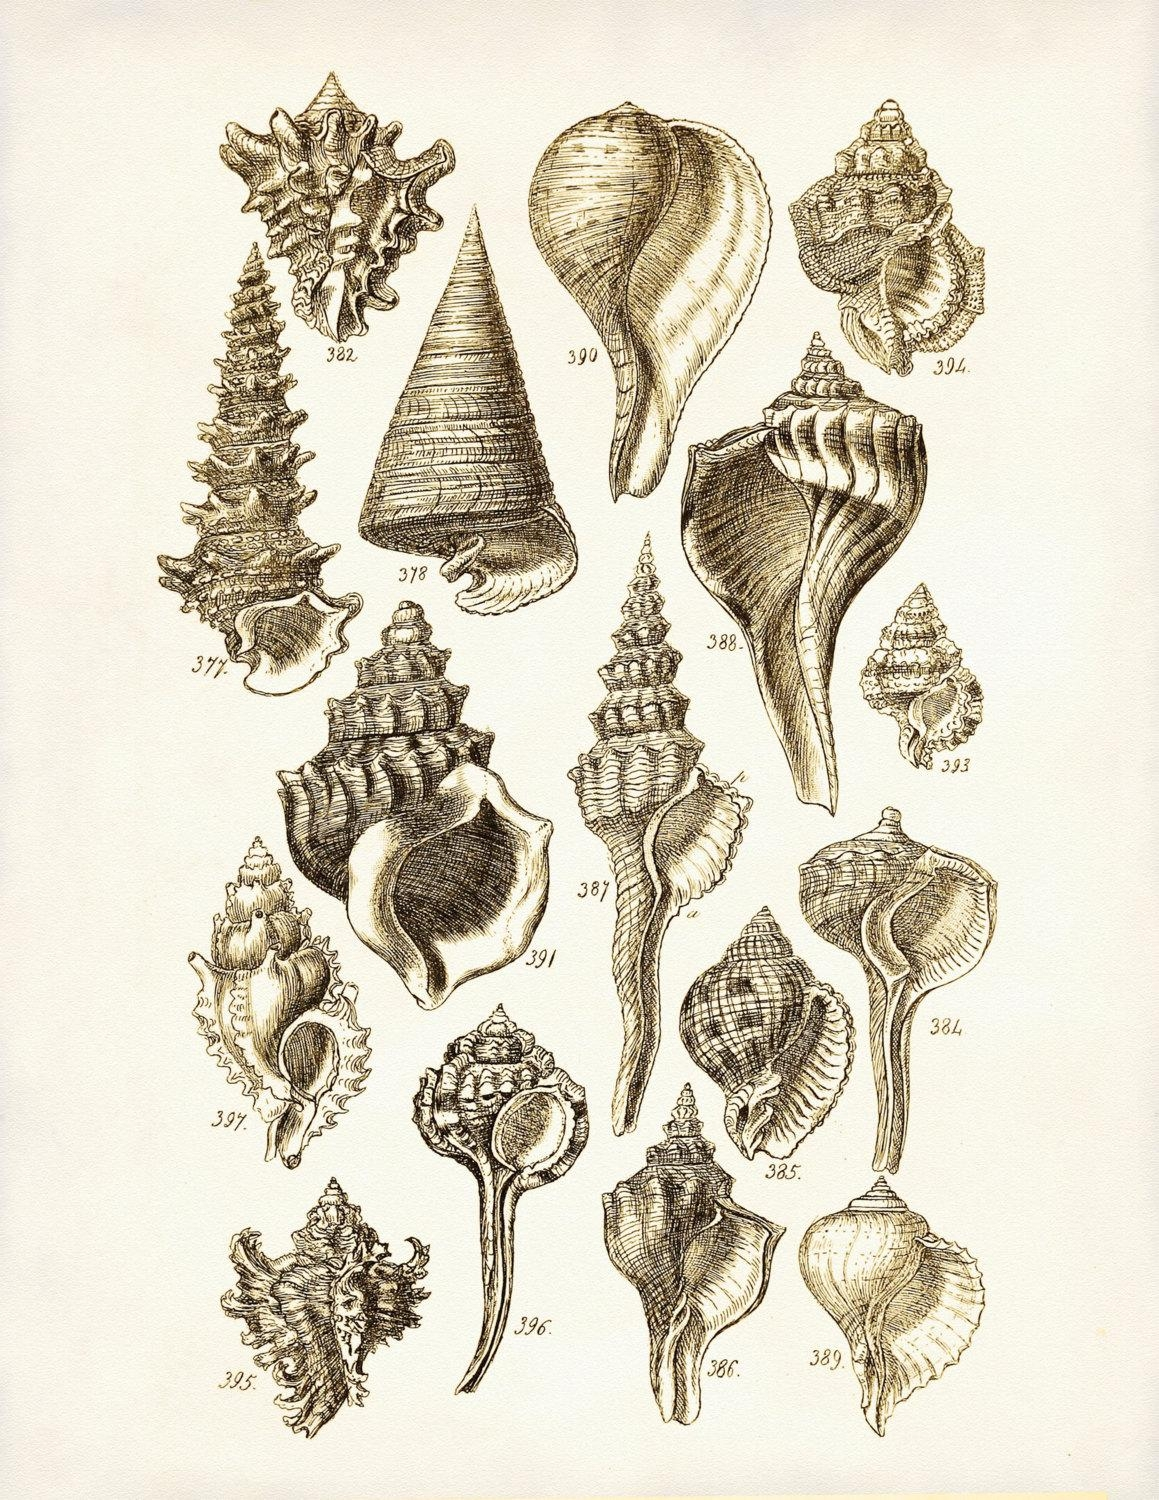 Seashells Poster Seashells Art Print George Sowerby Seashell Intended For Seashell Prints Wall Art (View 6 of 20)